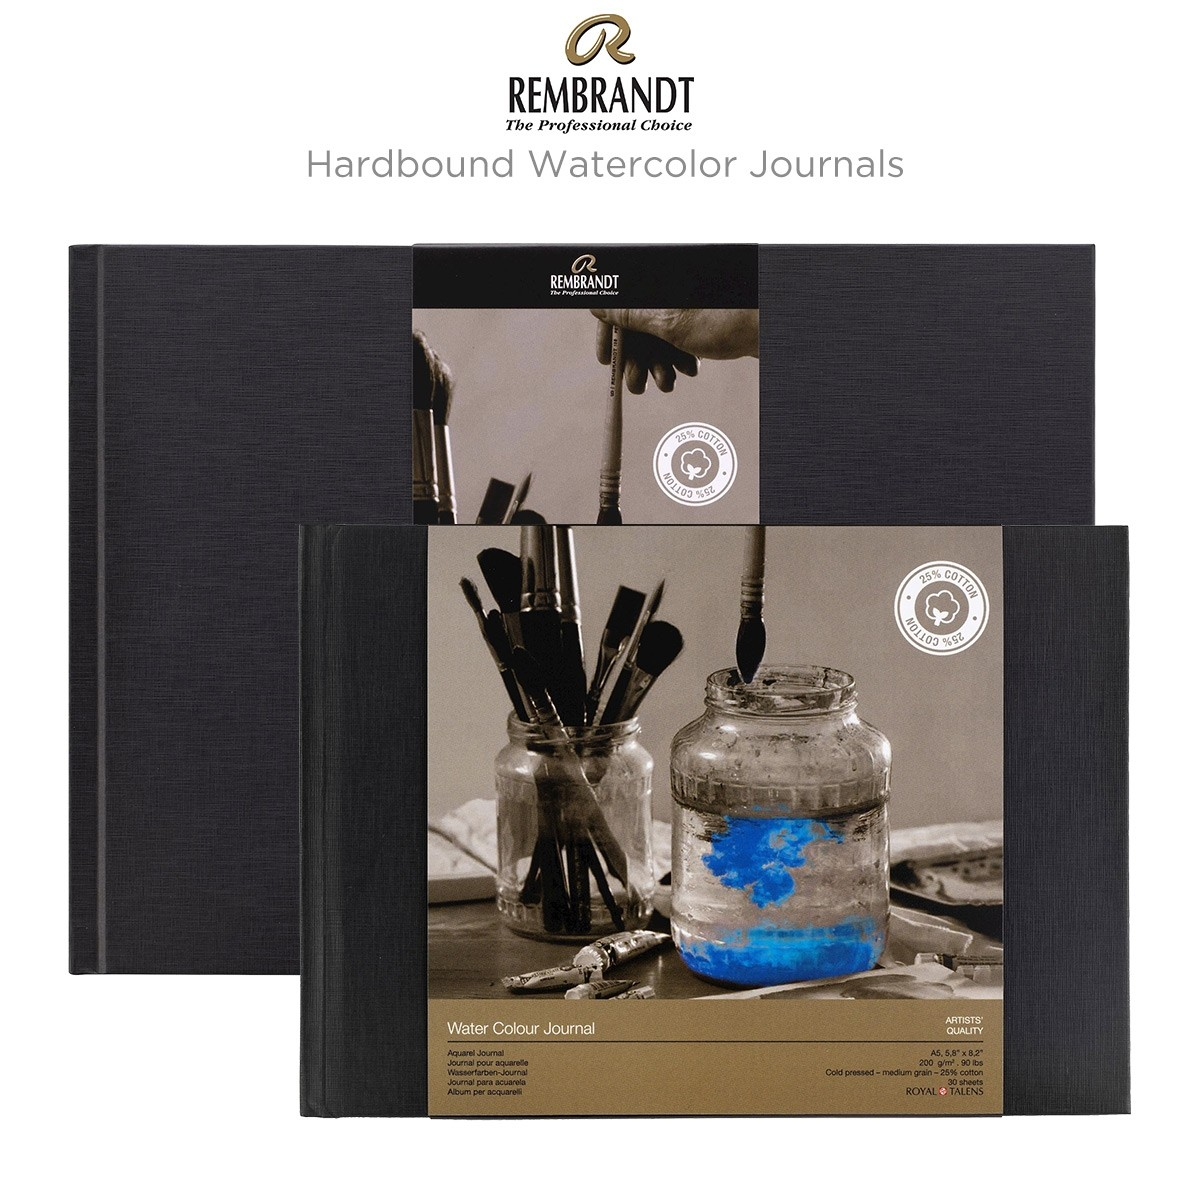 Rembrandt Hardbound Watercolor Journals